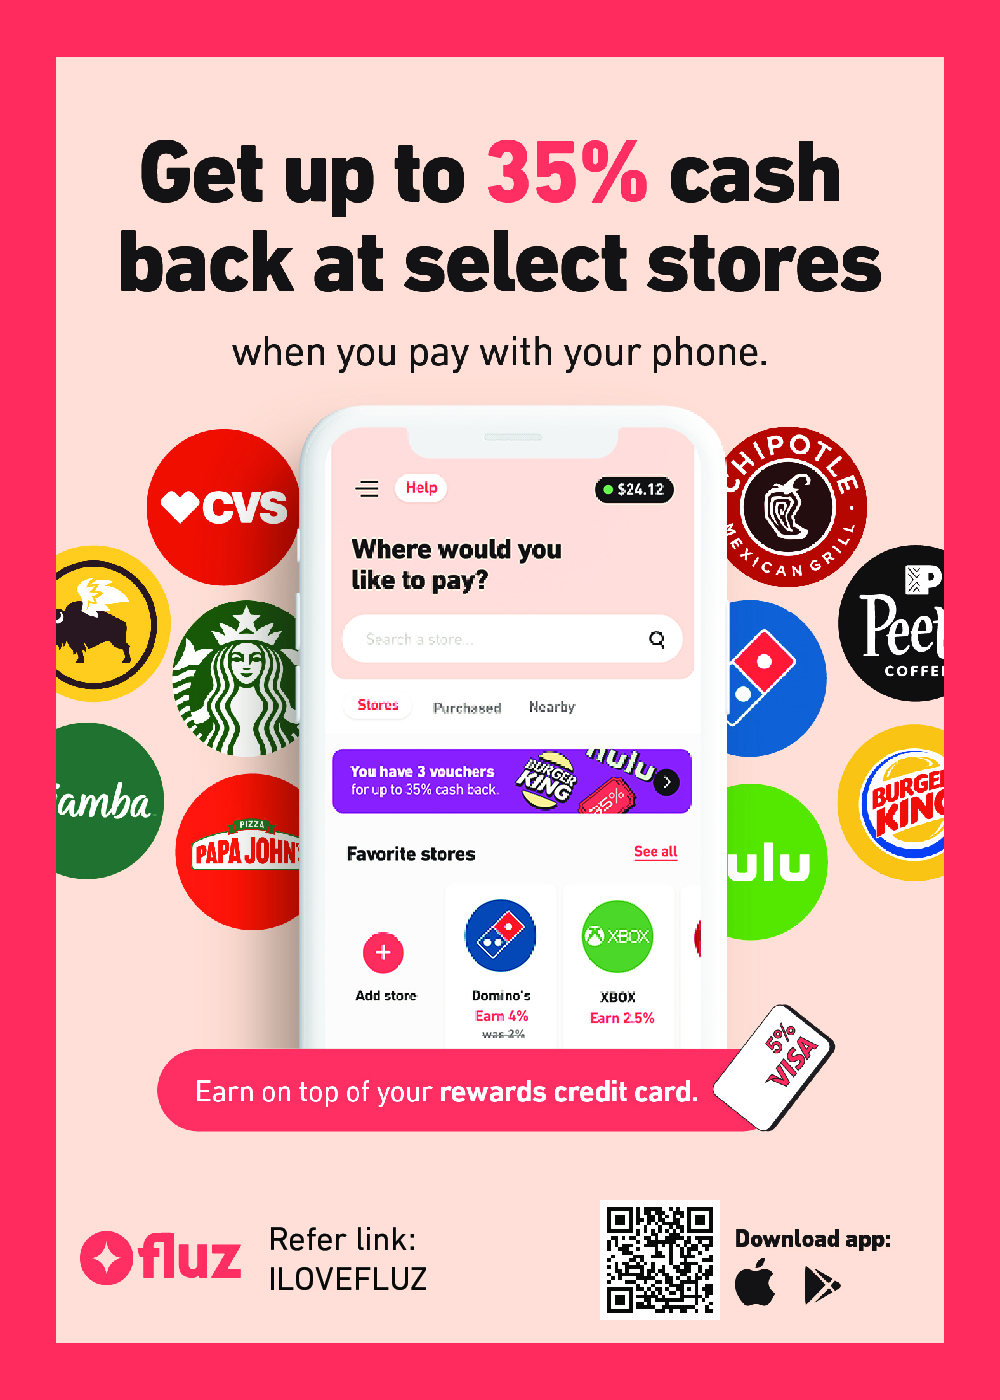 Sign-up using this referral and claim 3 boosted offers with up to 35% cash back on the first $10 you spend at select stores.